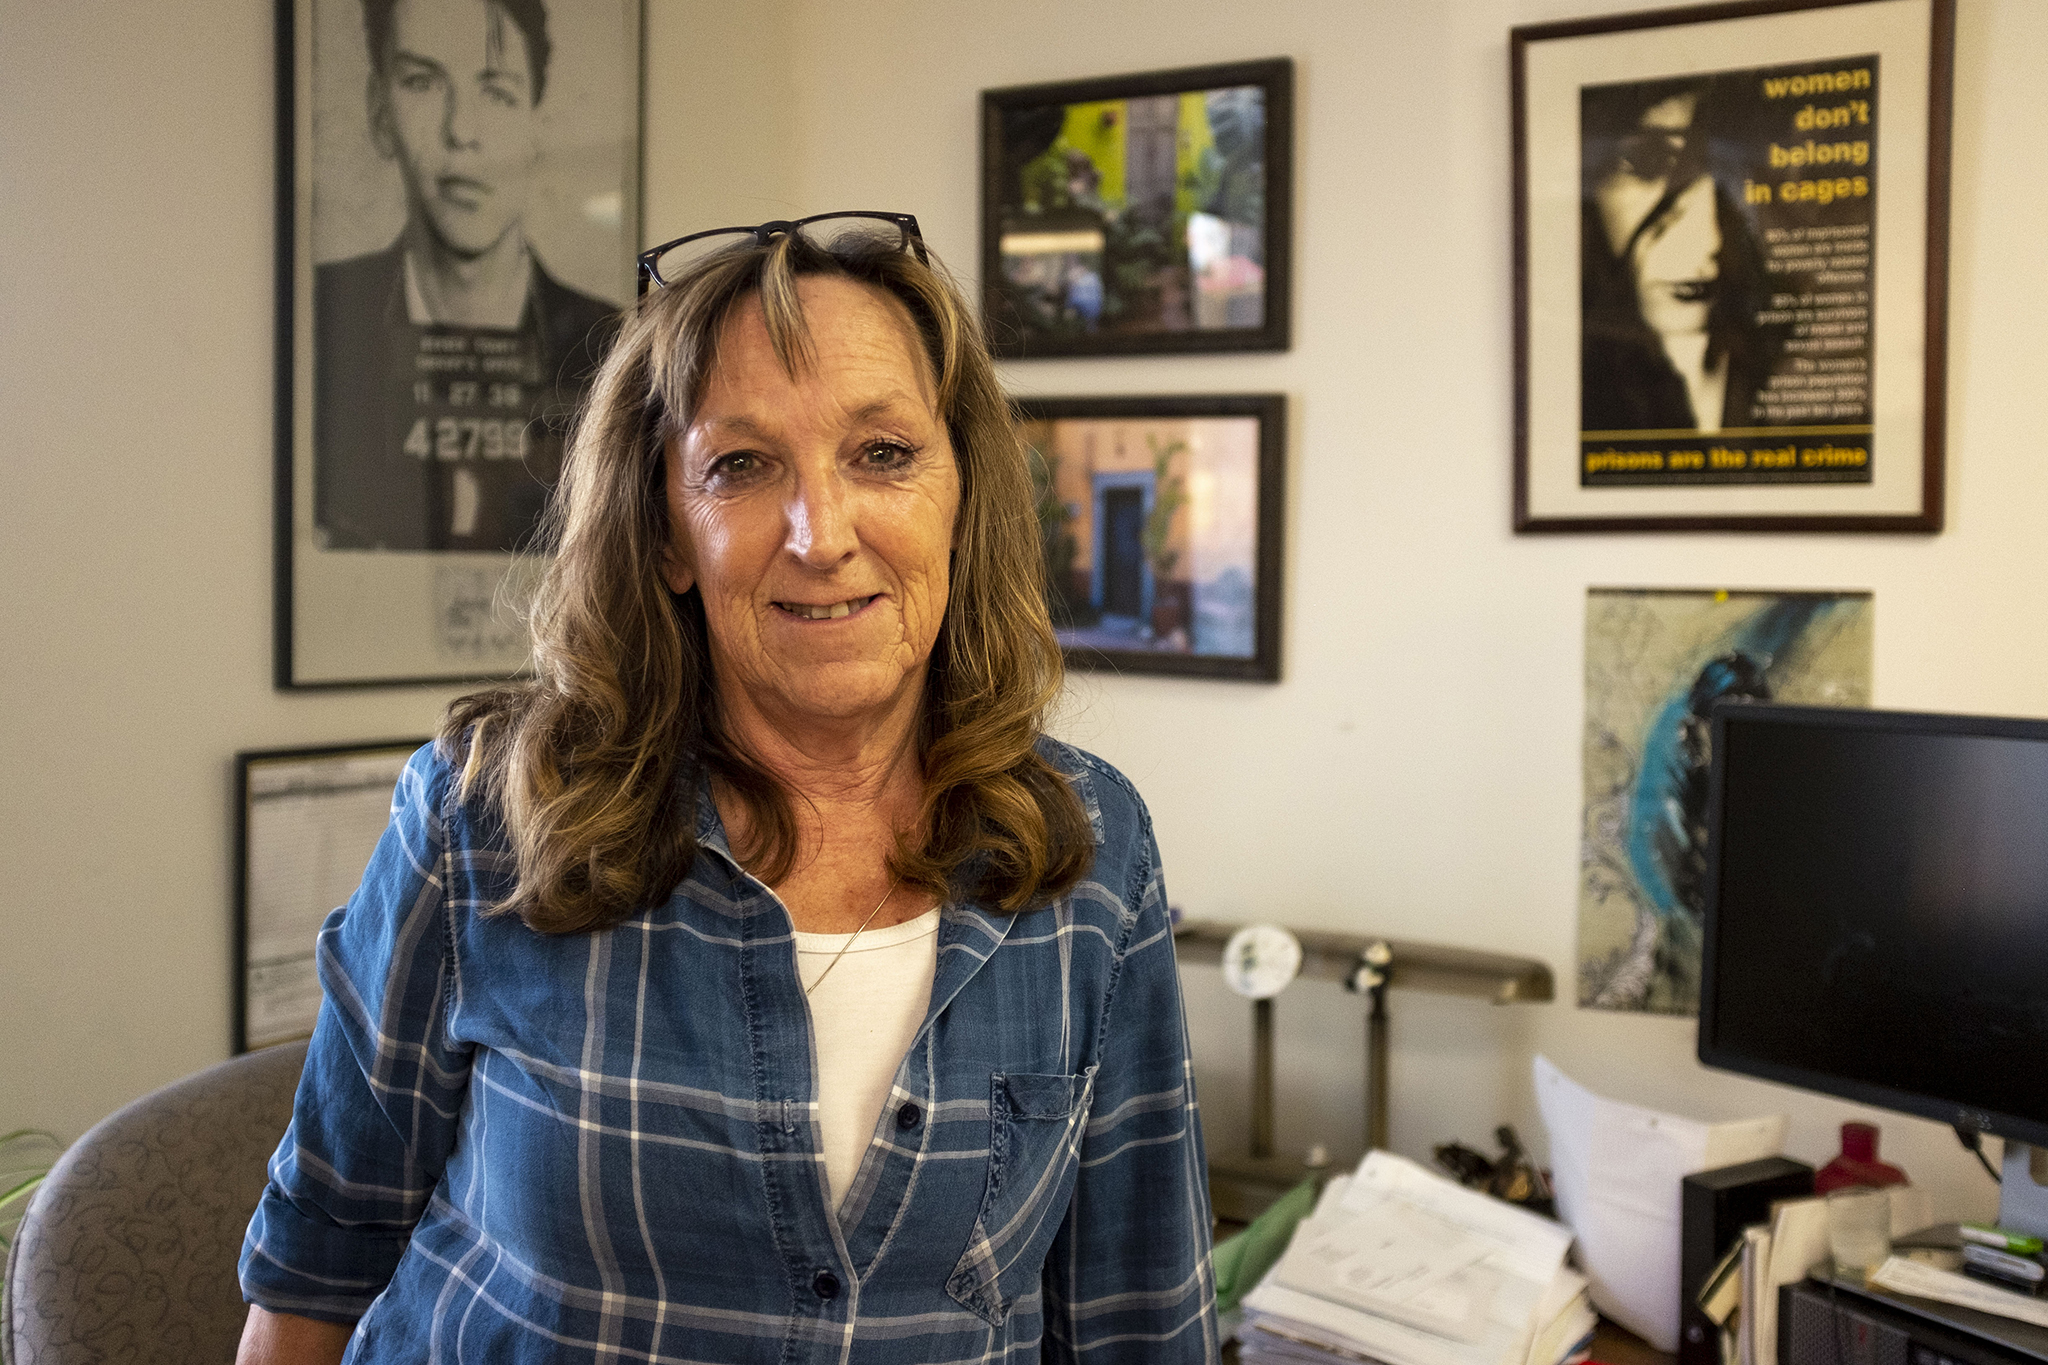 Pam Clifton poses for a portrait in her office at the Inner City Parish where the Colorado Criminal Justice Reform Coalition is headquartered. Jan. 9, 2020. (Kevin J. Beaty/Denverite)